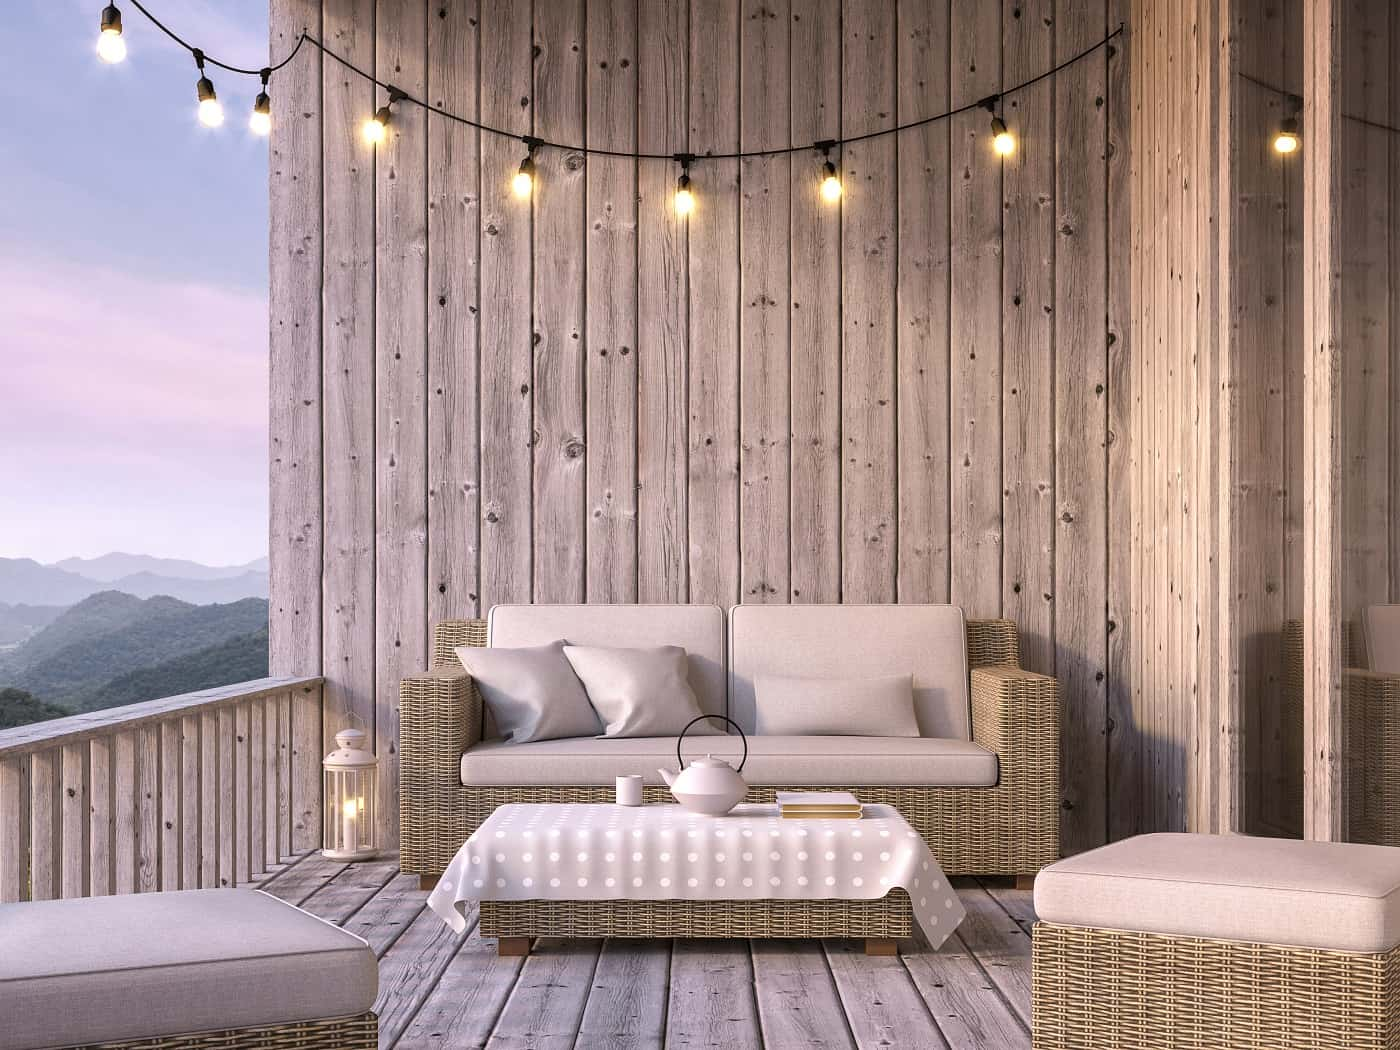 4 Tips For Choosing The Right Balcony Furniture. Rattan furniture set, classic bulb lamp strip and wooden planks wall trimming make the interior authentic